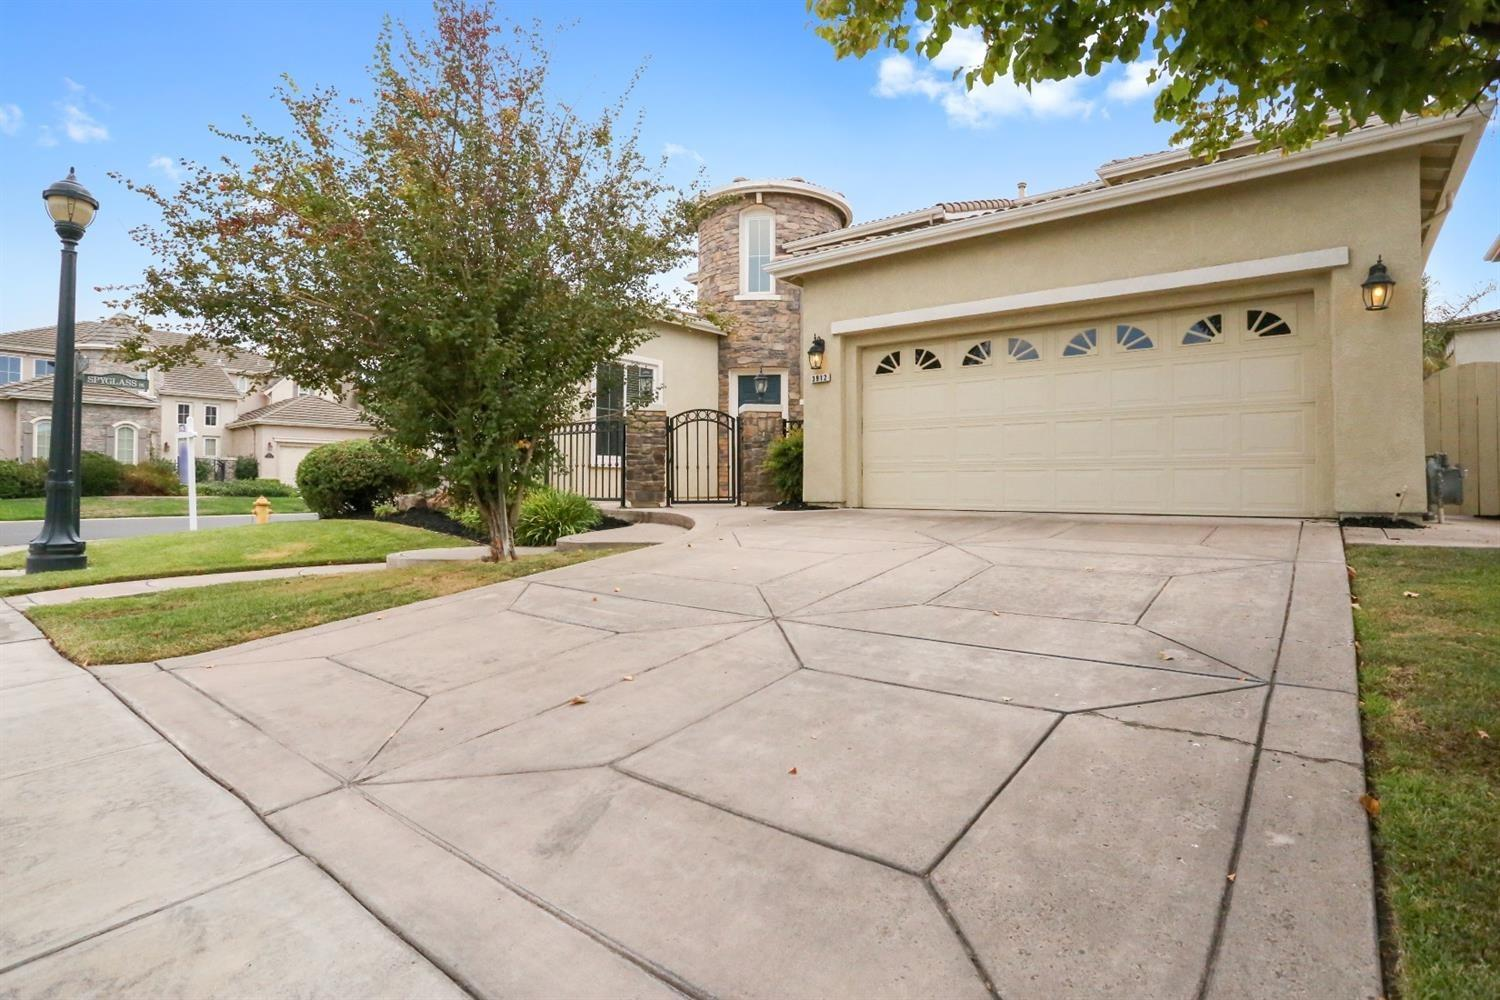 Beautiful 4BR 3.5BA Brookeside charmer located behind main gates in Saint Andrews Dr. open floor plan with separate Living & Family room, formal dingin, bedroom & full bath downstairs. Kitchen has granite counter tops, with a pool for the hot summer days.